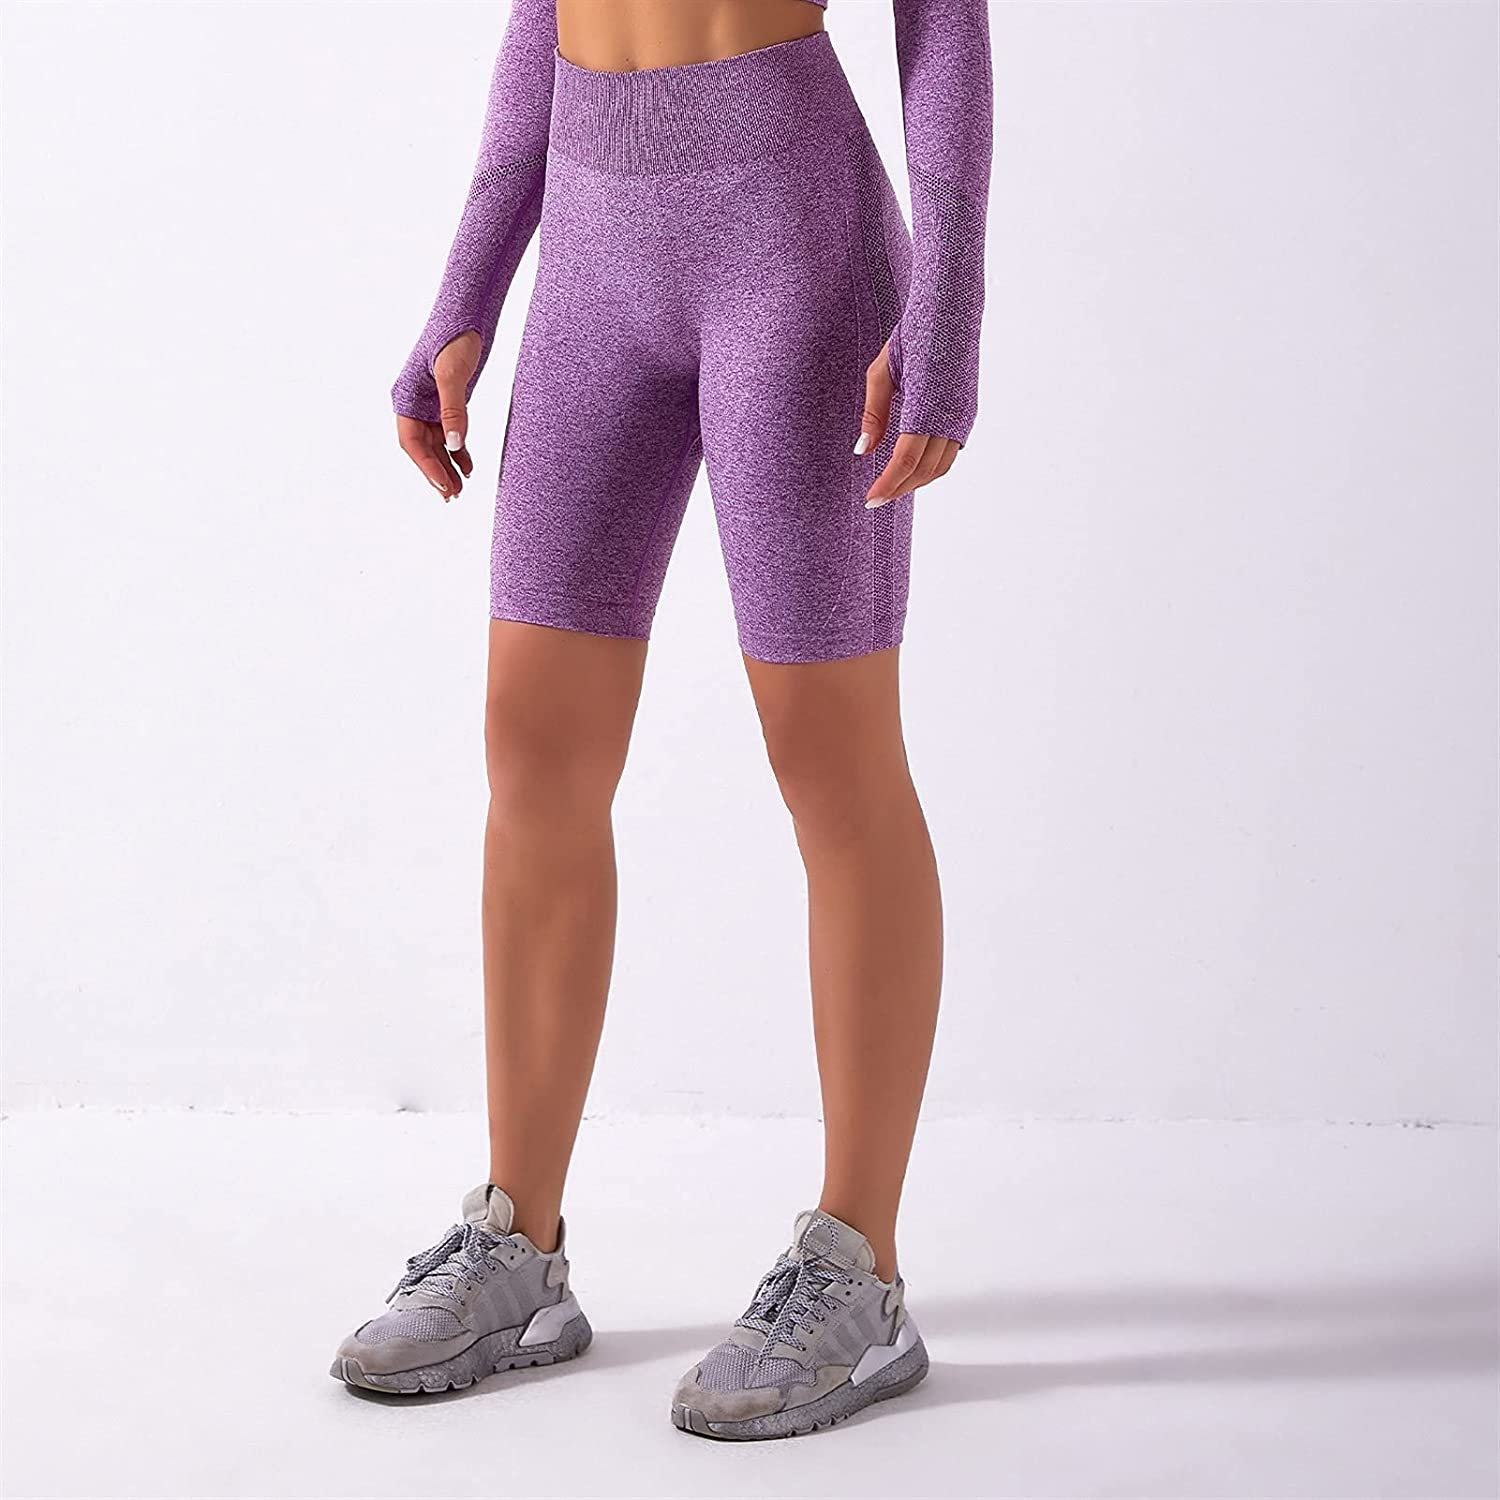 KAHS Ladies Yoga Shorts Sports Sportswear Fitness Running Workou 25% Limited Special Price OFF